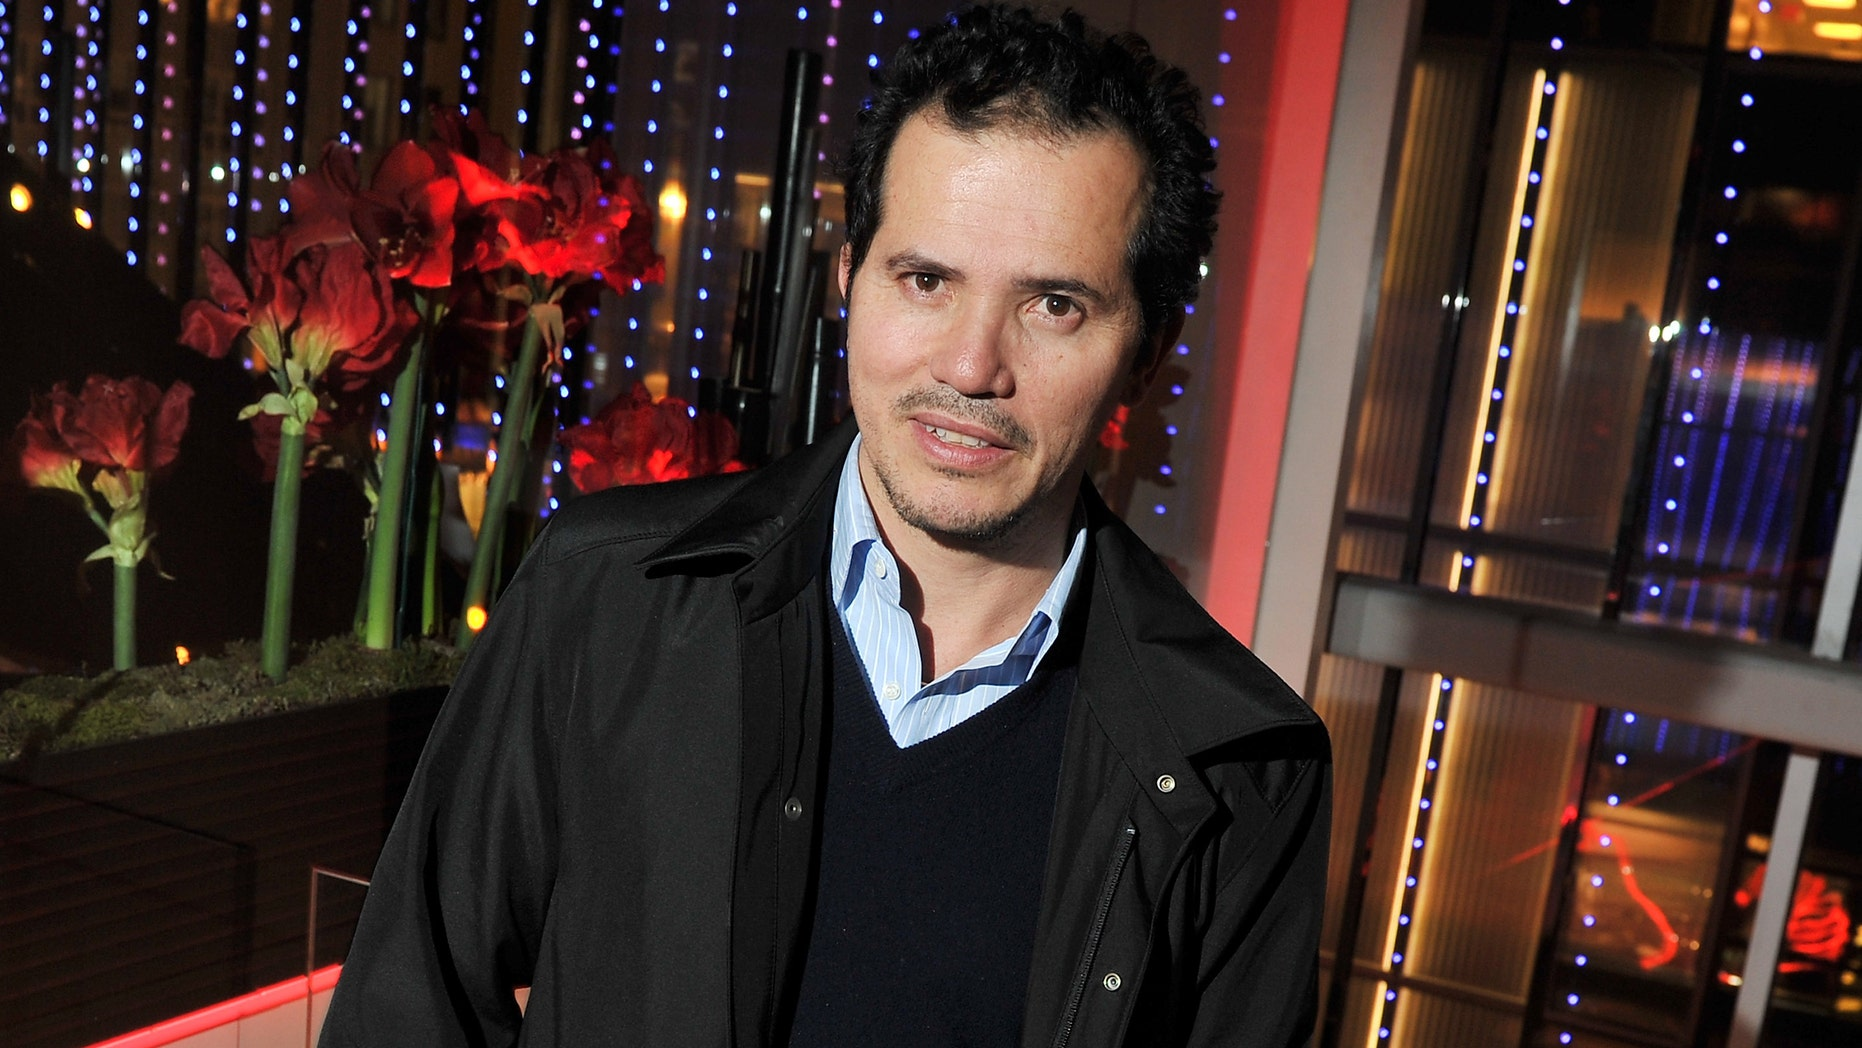 """NEW YORK, NY - DECEMBER 13:  Actor John Leguizamo attends the after party for the Giorgio Armani & Cinema Society screening of """"Albert Nobbs"""" at the Armani Ristorante on December 13, 2011 in New York City.  (Photo by Stephen Lovekin/Getty Images)"""